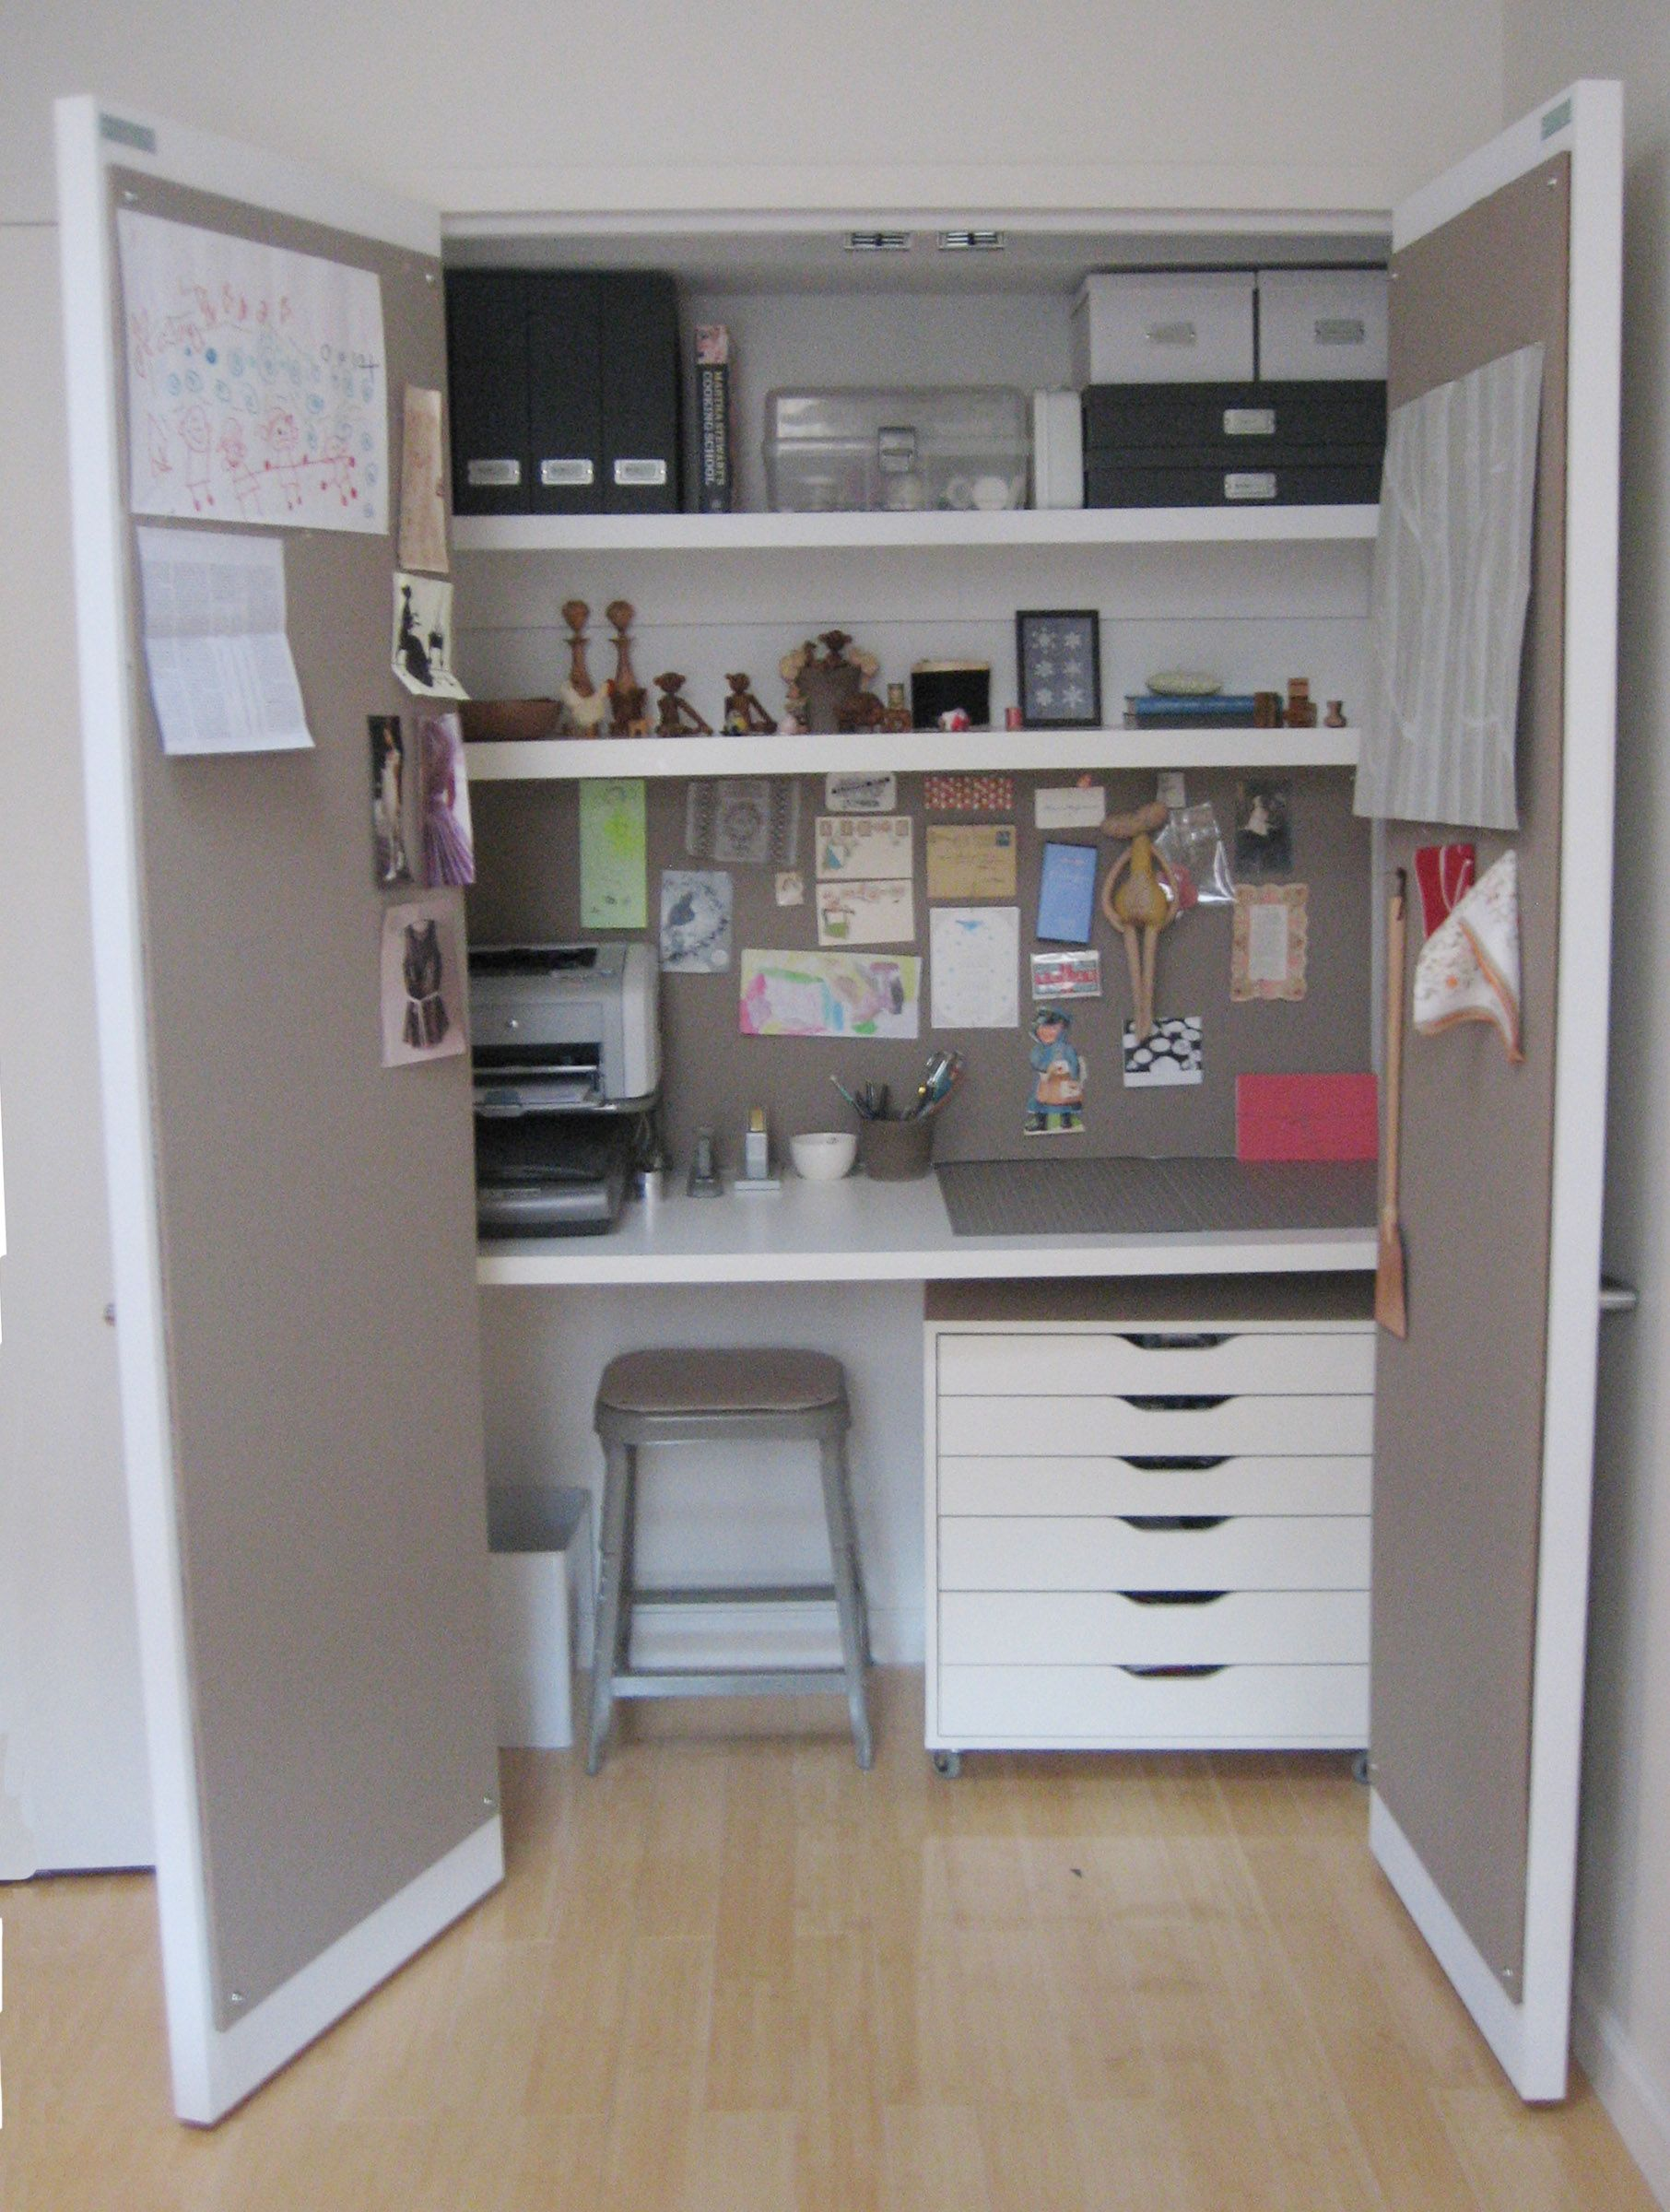 Craft closet organization ideas - Find This Pin And More On Craft Area Organization